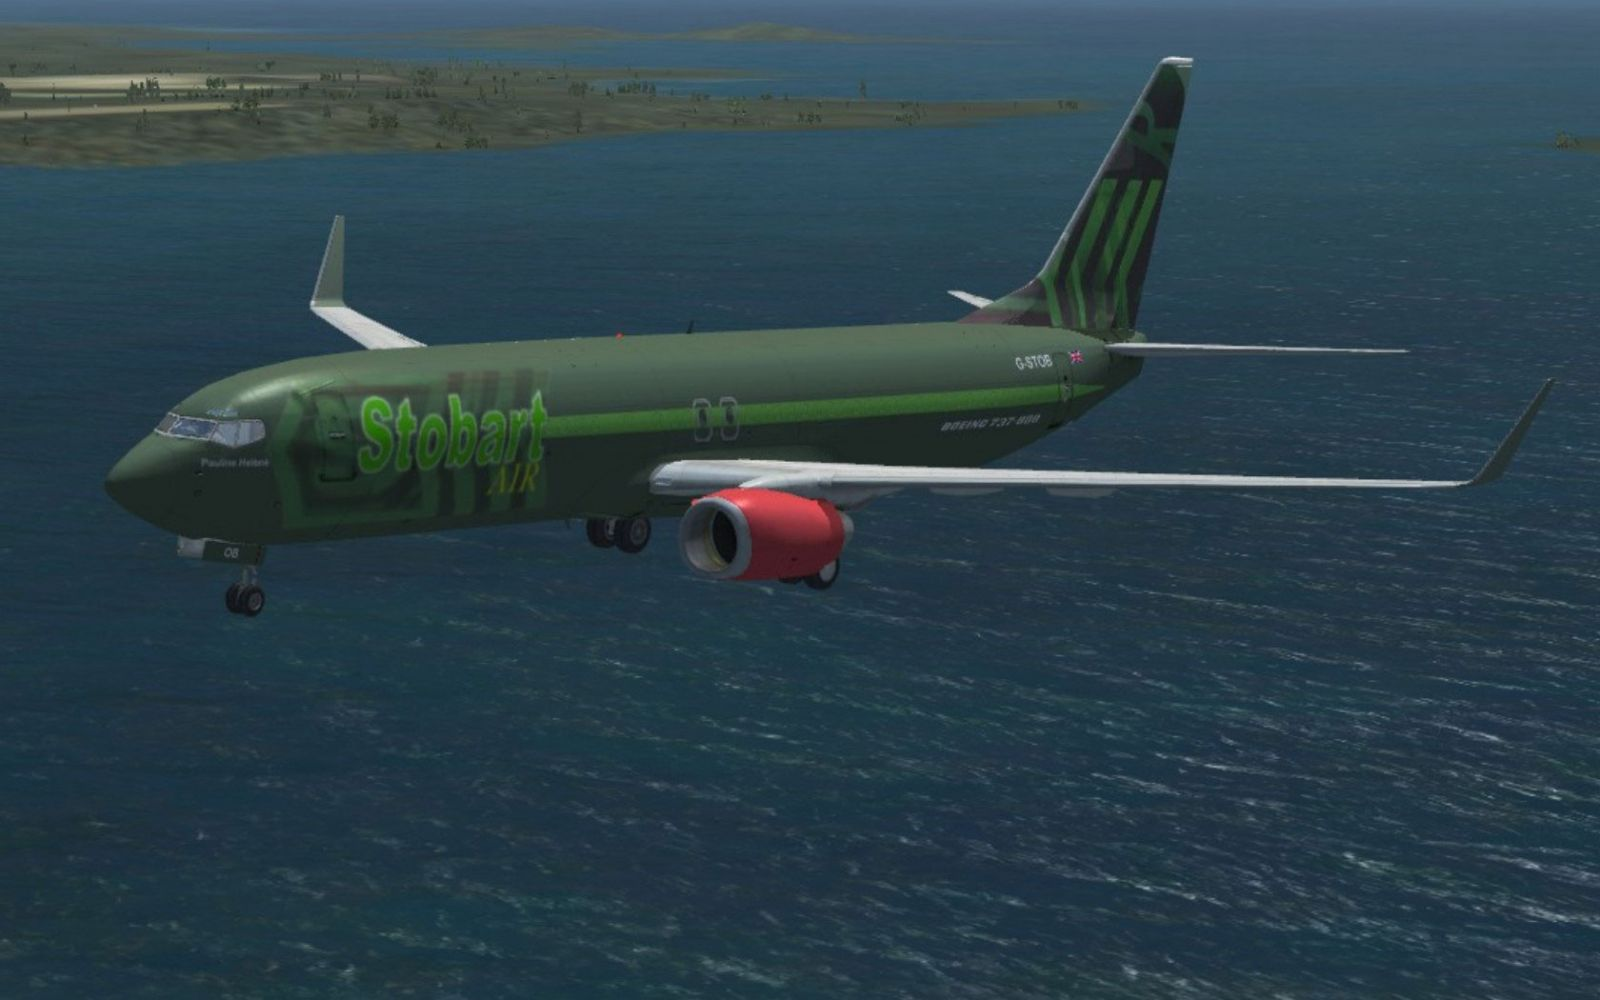 plane simulator games with Fsx Stobart Air Boeing 737 800 on Fsx Air Marshall Islands Dornier Do 228 together with Fsx Fedex Express Boeing 747 8f besides Iracing   New Suzuka Previews additionally Can You Run An Airport also Phoenix 777.